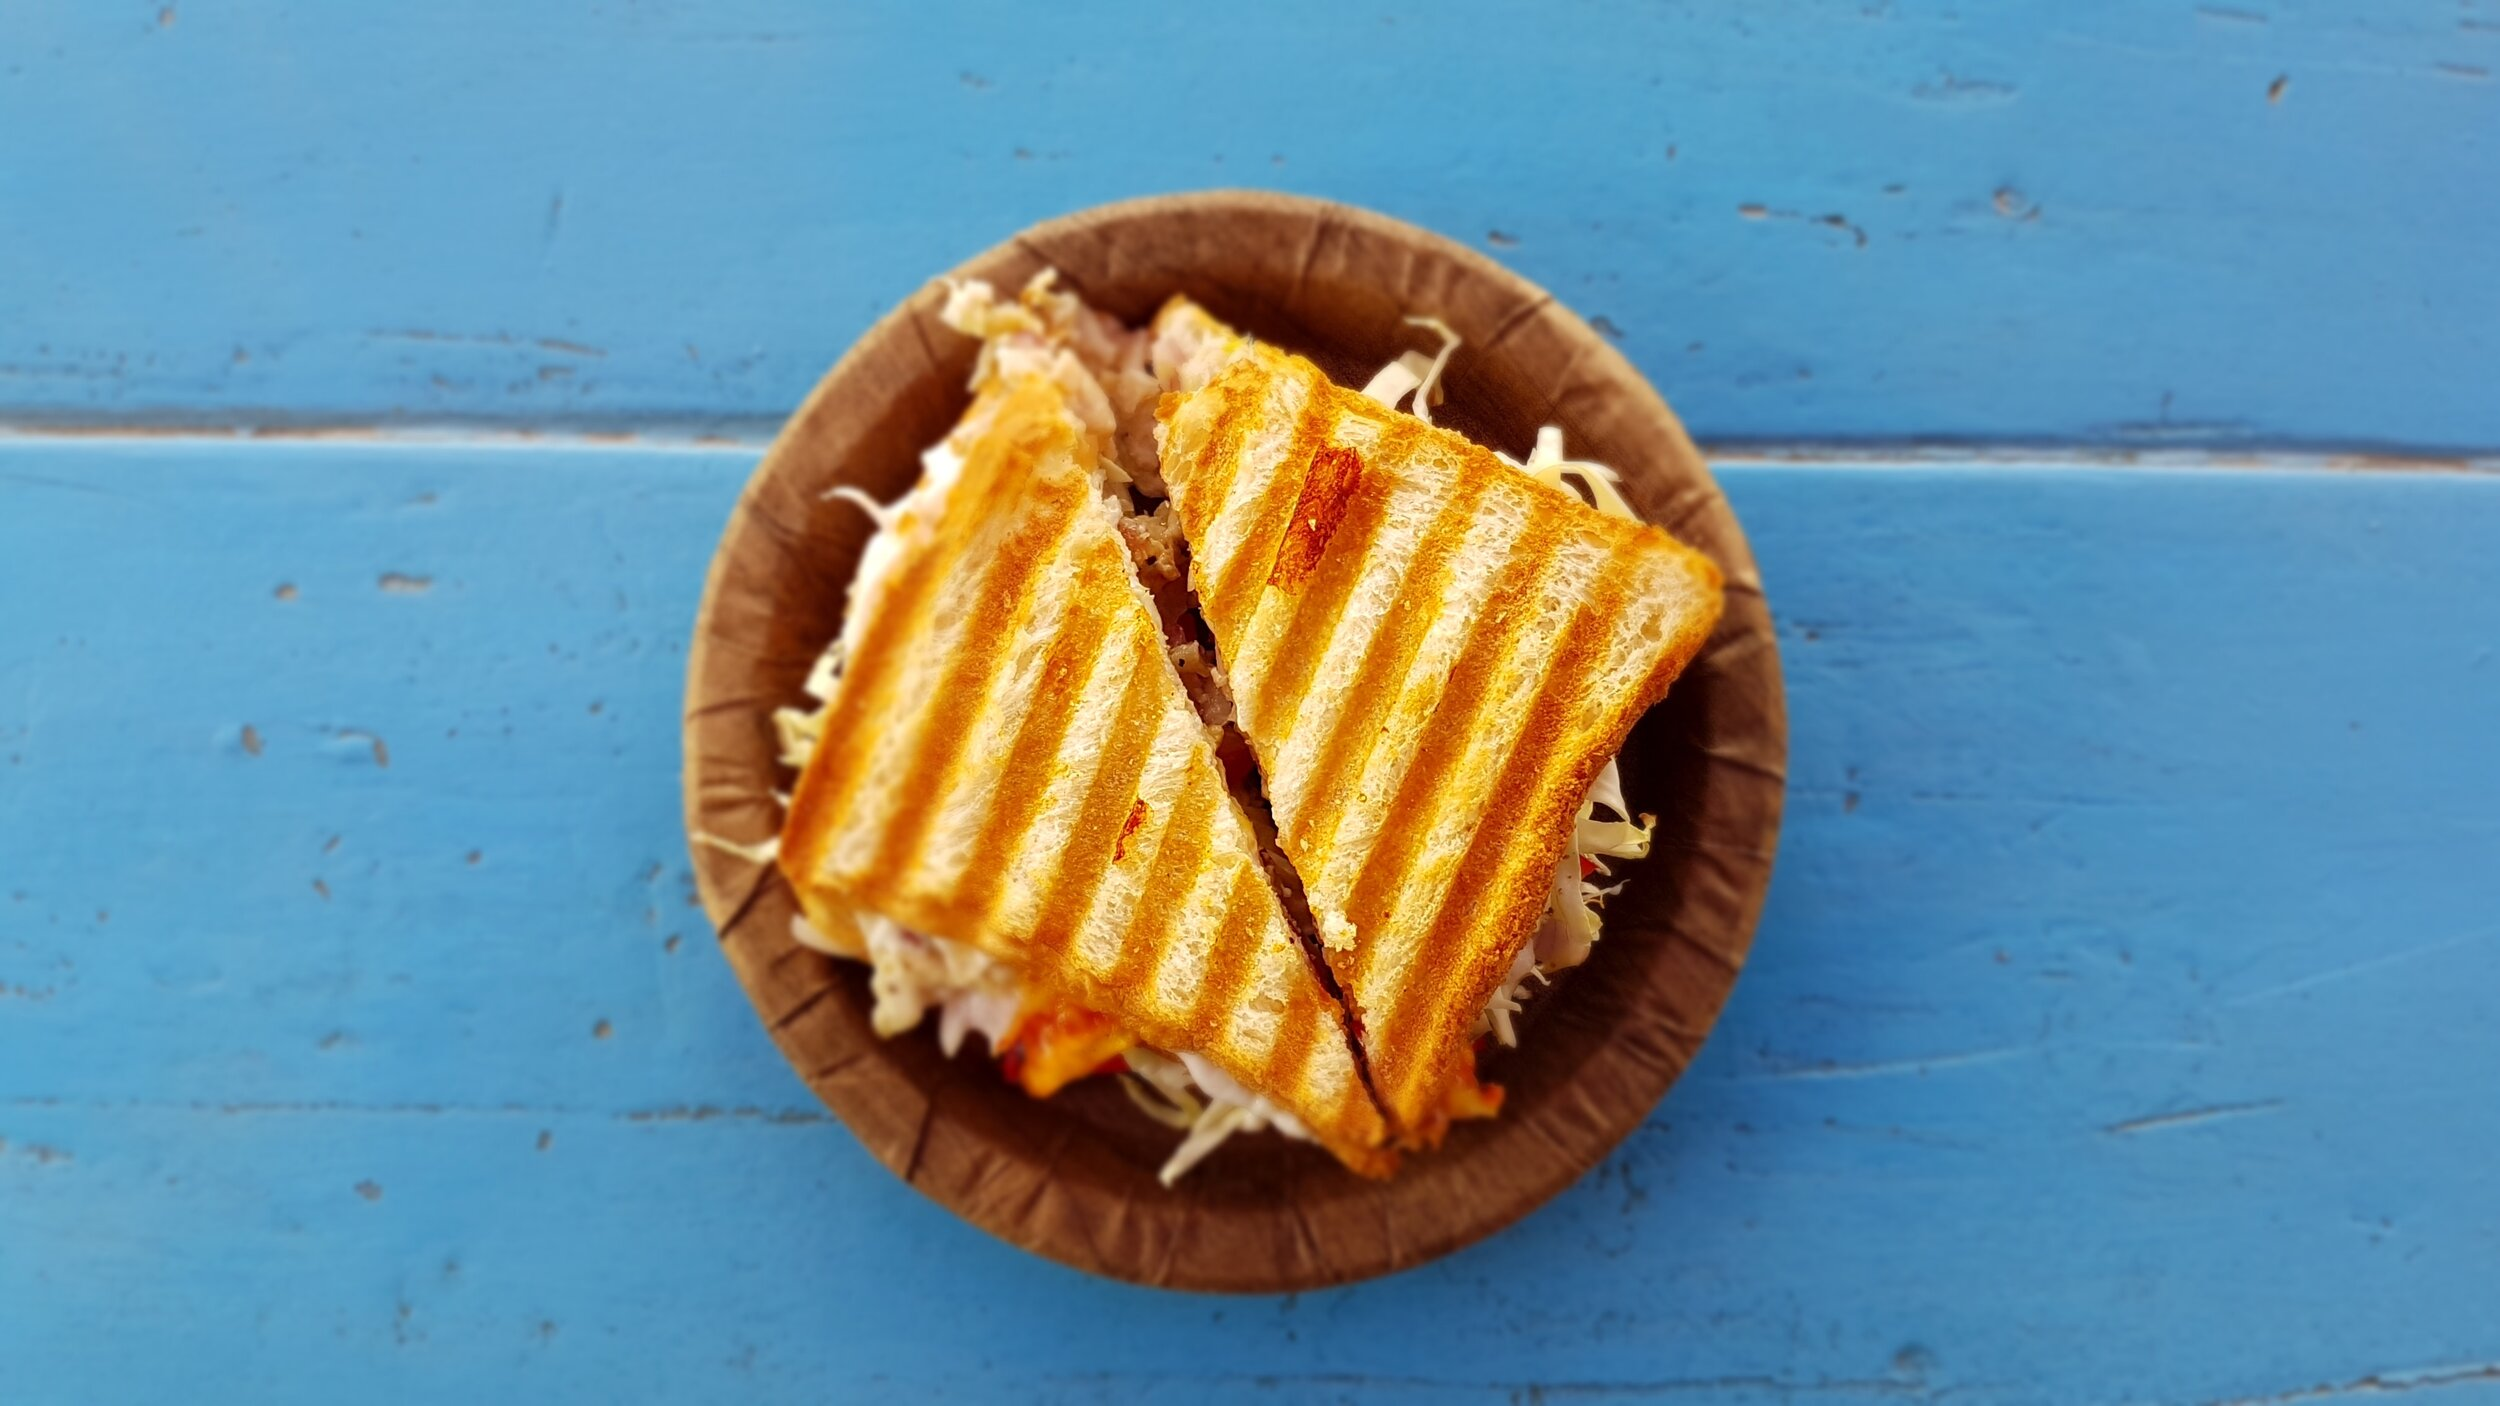 sandwiches with a blue background